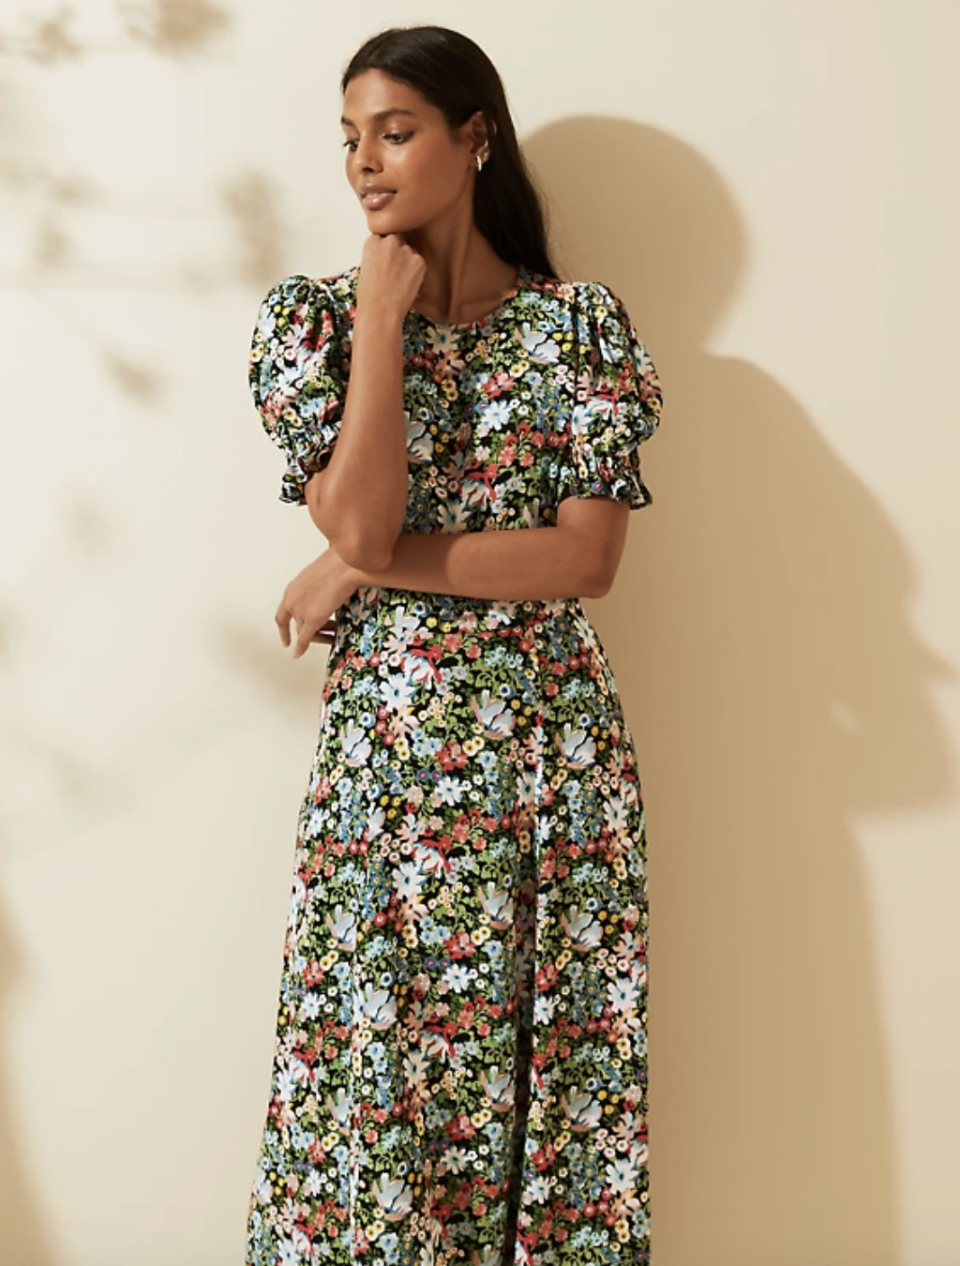 The Ghost Floral Puff Sleeve Midi Dress ticks all the boxes, and has garnered rave reviews, with some likening it to designer brands.  (Marks and Spencer)